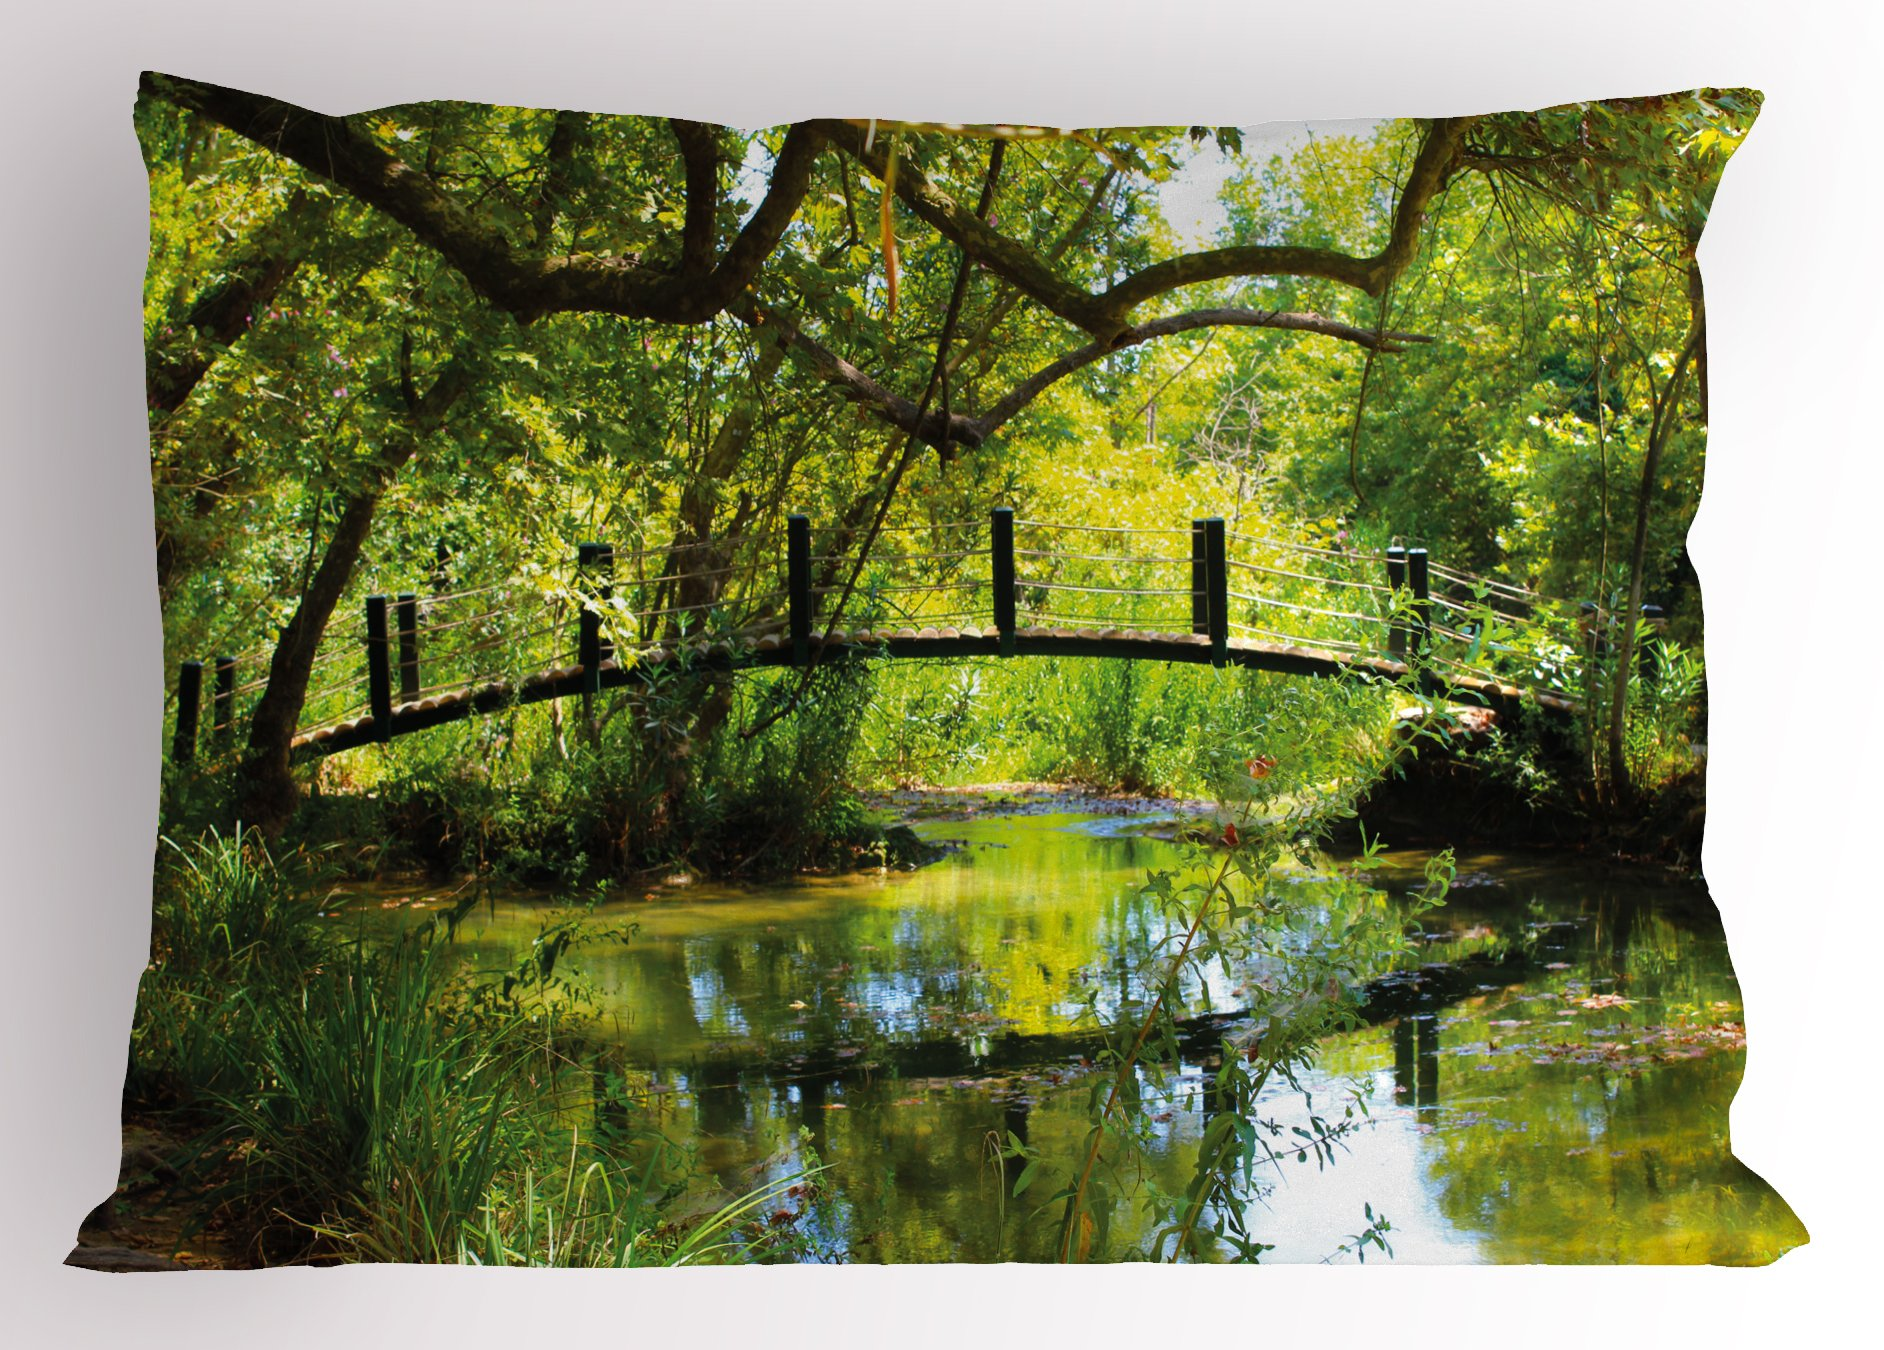 Lunarable Nature Pillow Sham, Photo of a Forest with Bridge Lake Wilderness Woods Greenery Spring Rural Scenery, Decorative Standard Size Printed Pillowcase, 26 X 20 inches, Green Brown by Lunarable (Image #1)